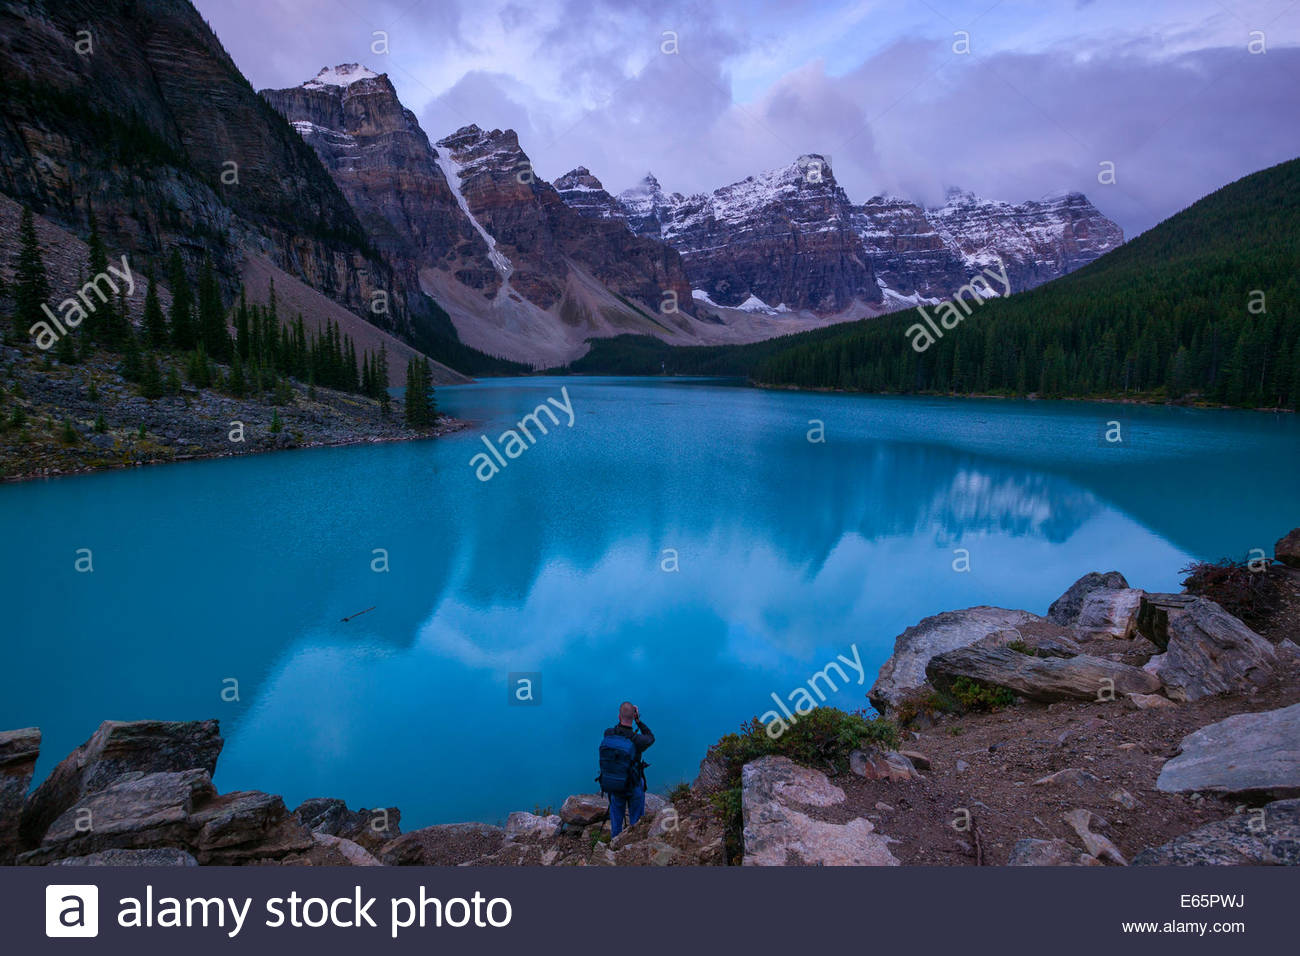 A man photographs the morning light on the mountains surrounding Moraine Lake in Banff National Park, Alberta, Canada. - Stock Image